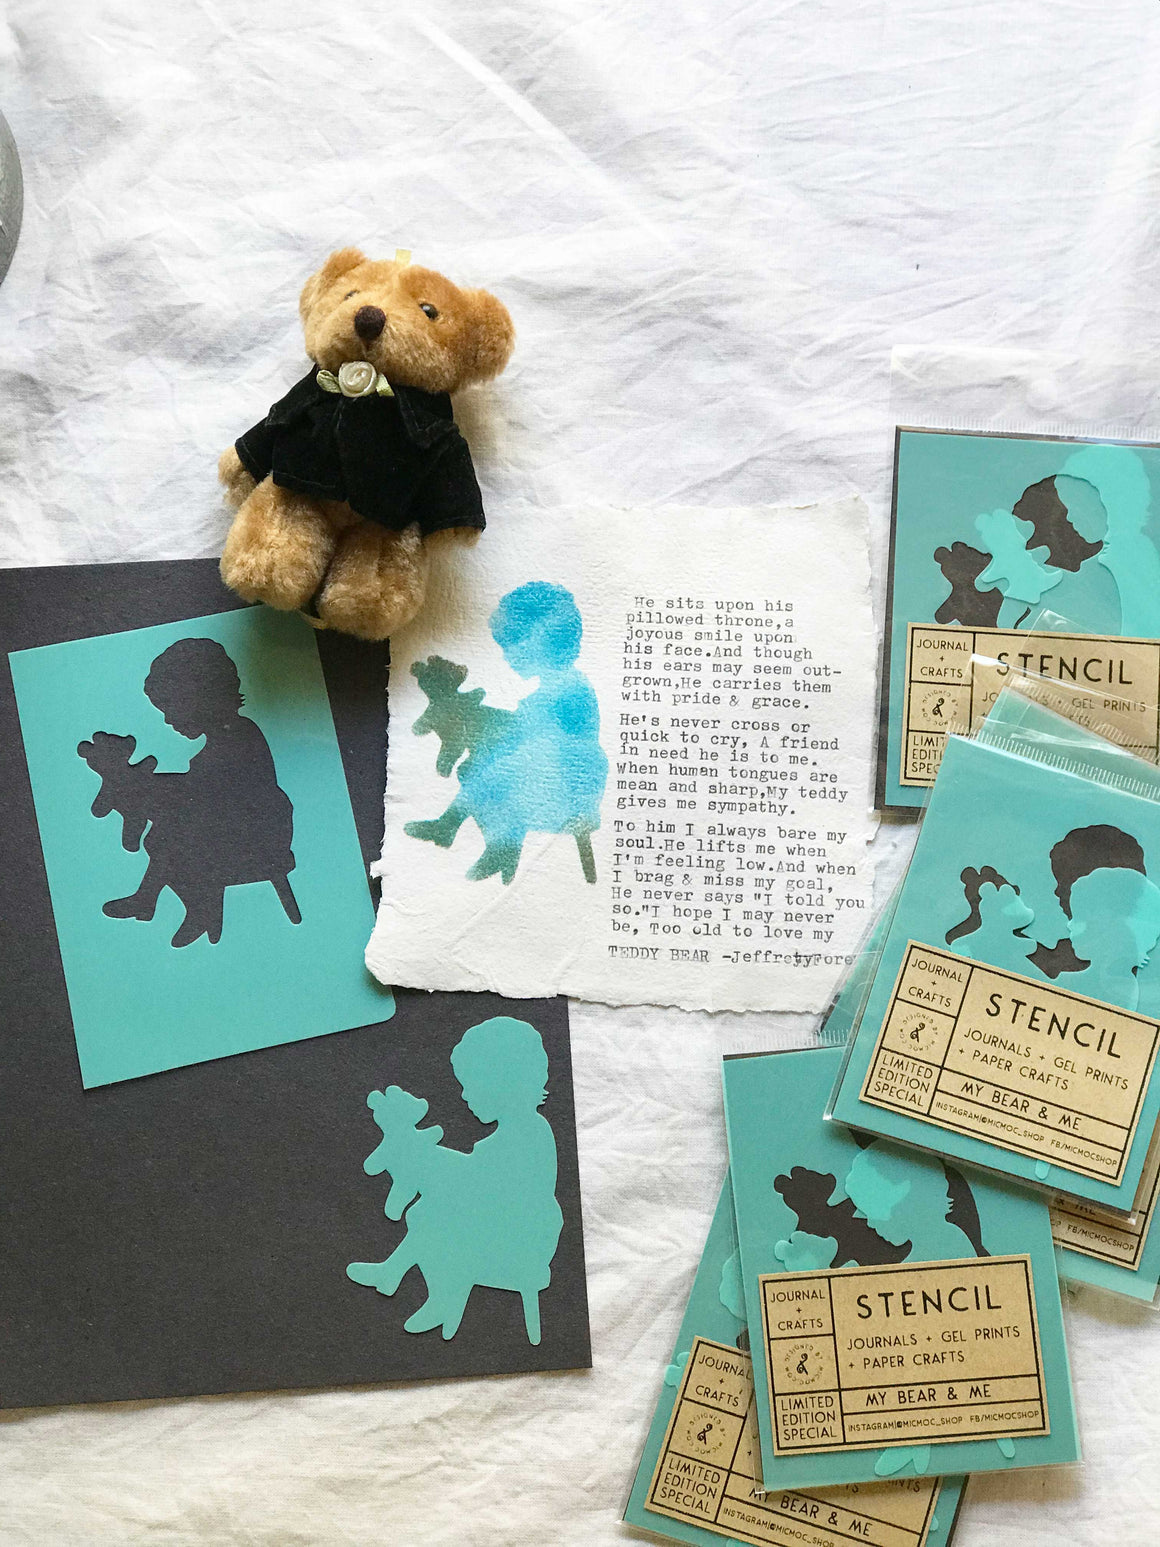 Art Stencil & Mask Set - 'My Bear & Me' at Mic Moc Curated Emporium from micmoc.com